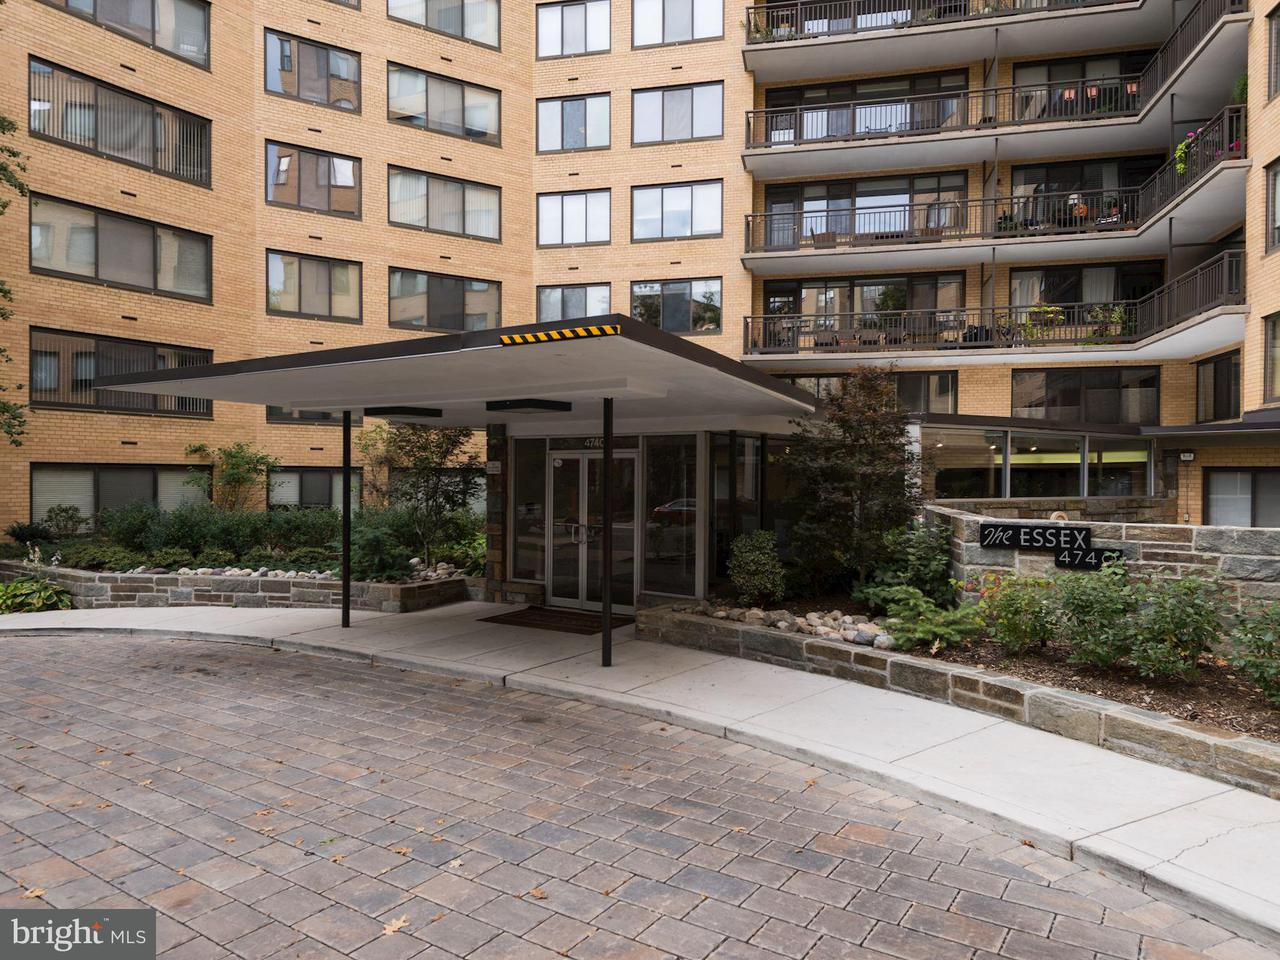 Townhouse for Sale at 4740 CONNECTICUT AVE NW #108 4740 CONNECTICUT AVE NW #108 Washington, District Of Columbia 20008 United States